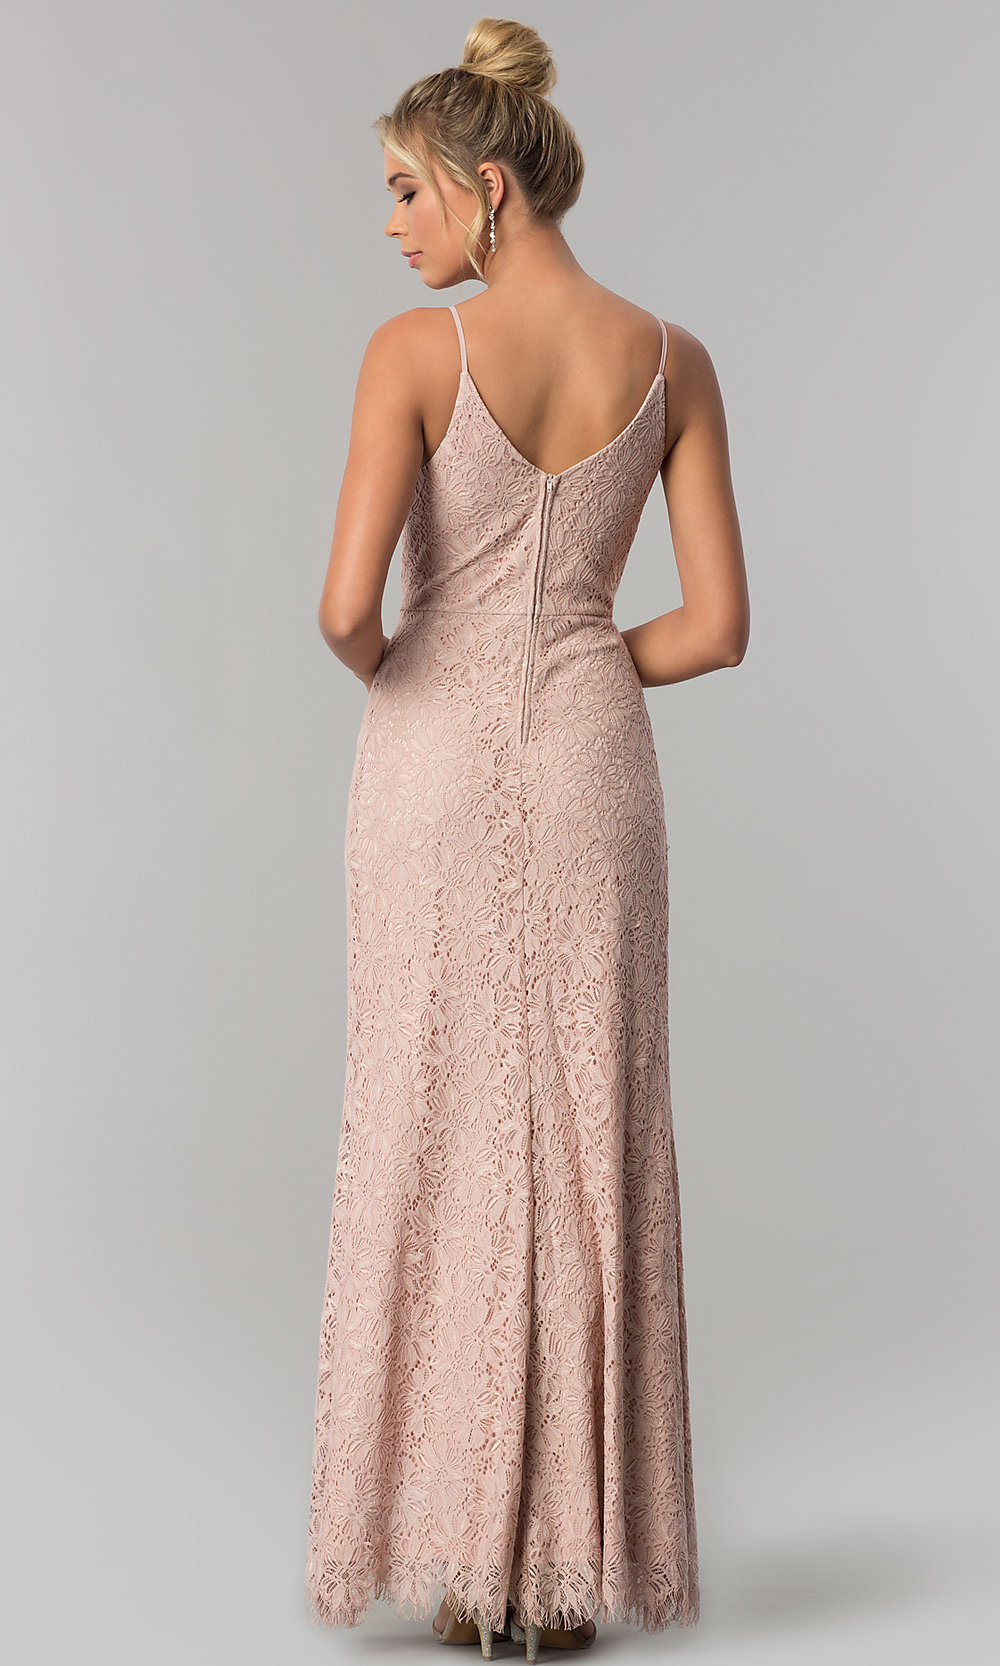 Lace V-Neck Long Prom Dress with Slit - PromGirl